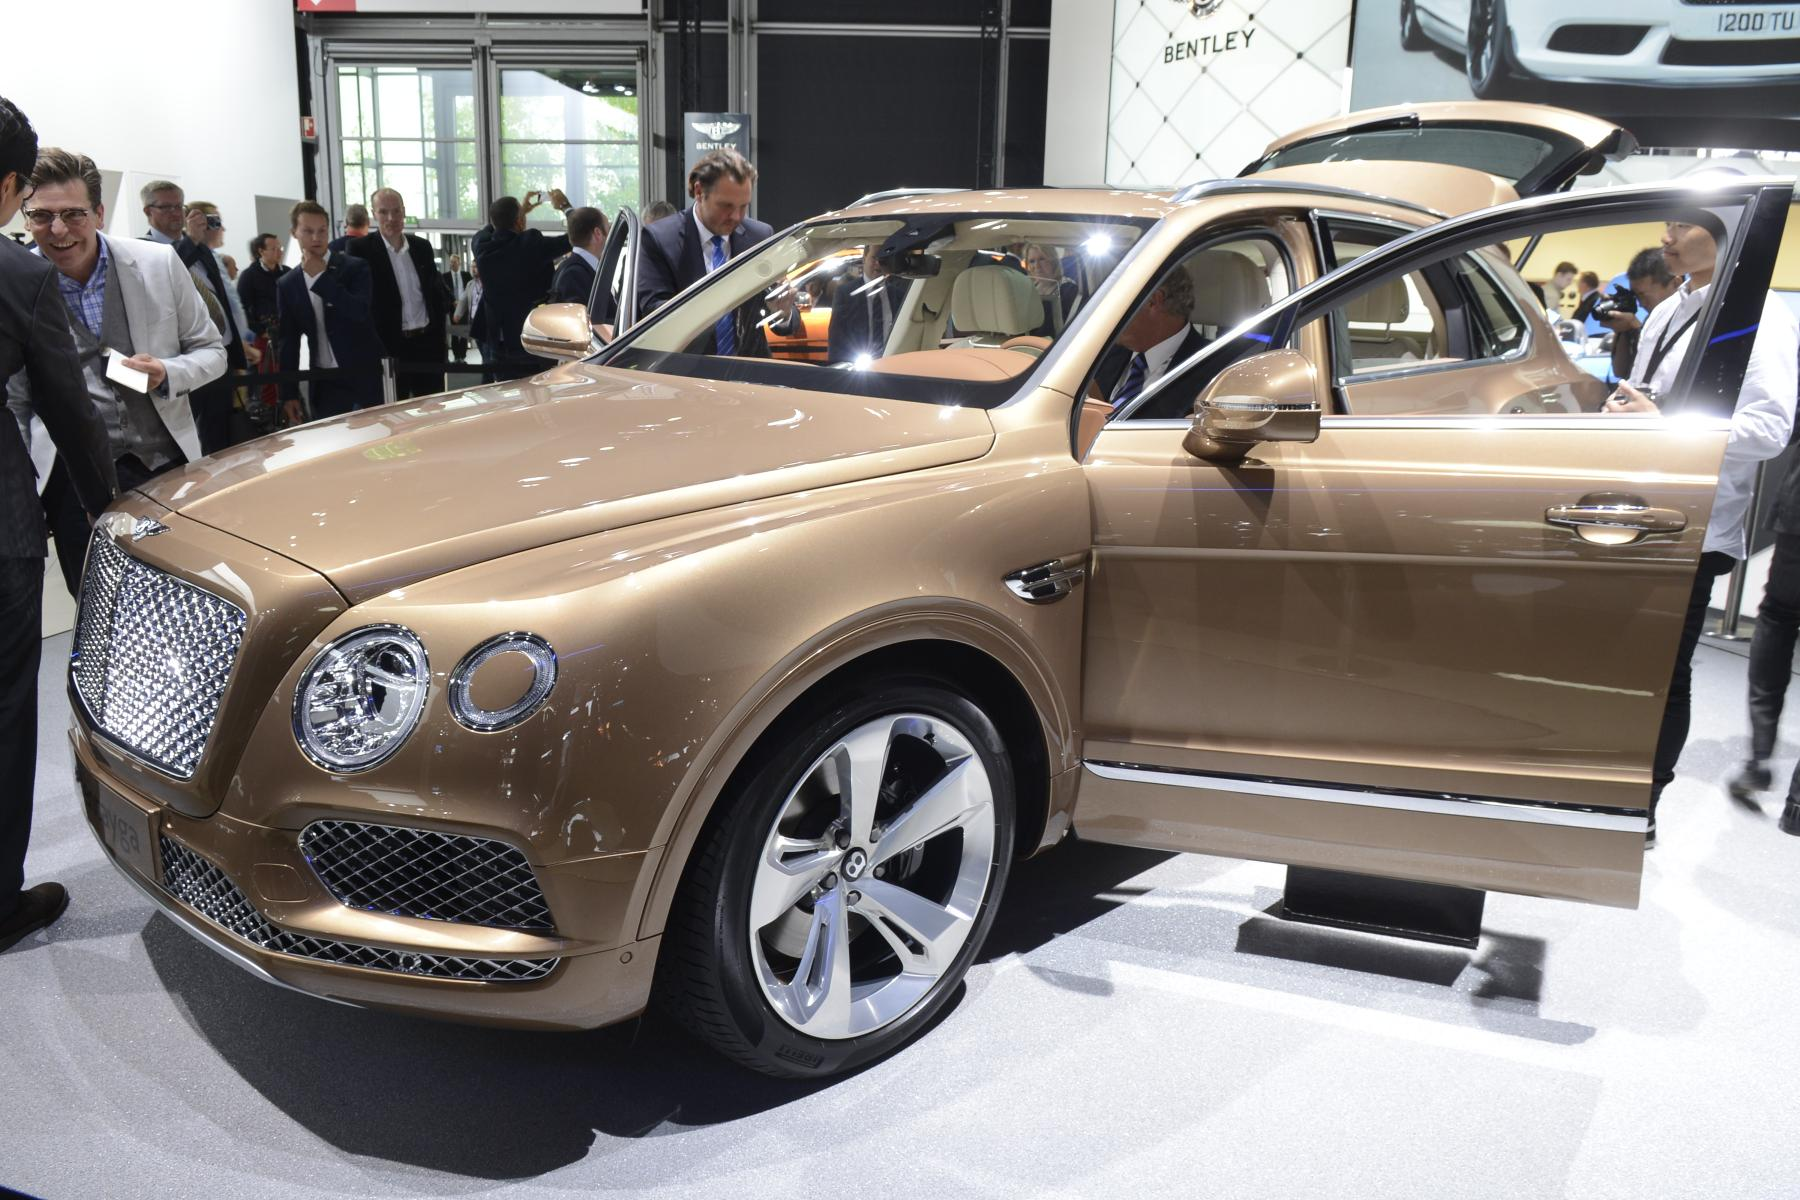 gtc tag news bentley x continental camouflage photos spy testing auto spied little with truck price